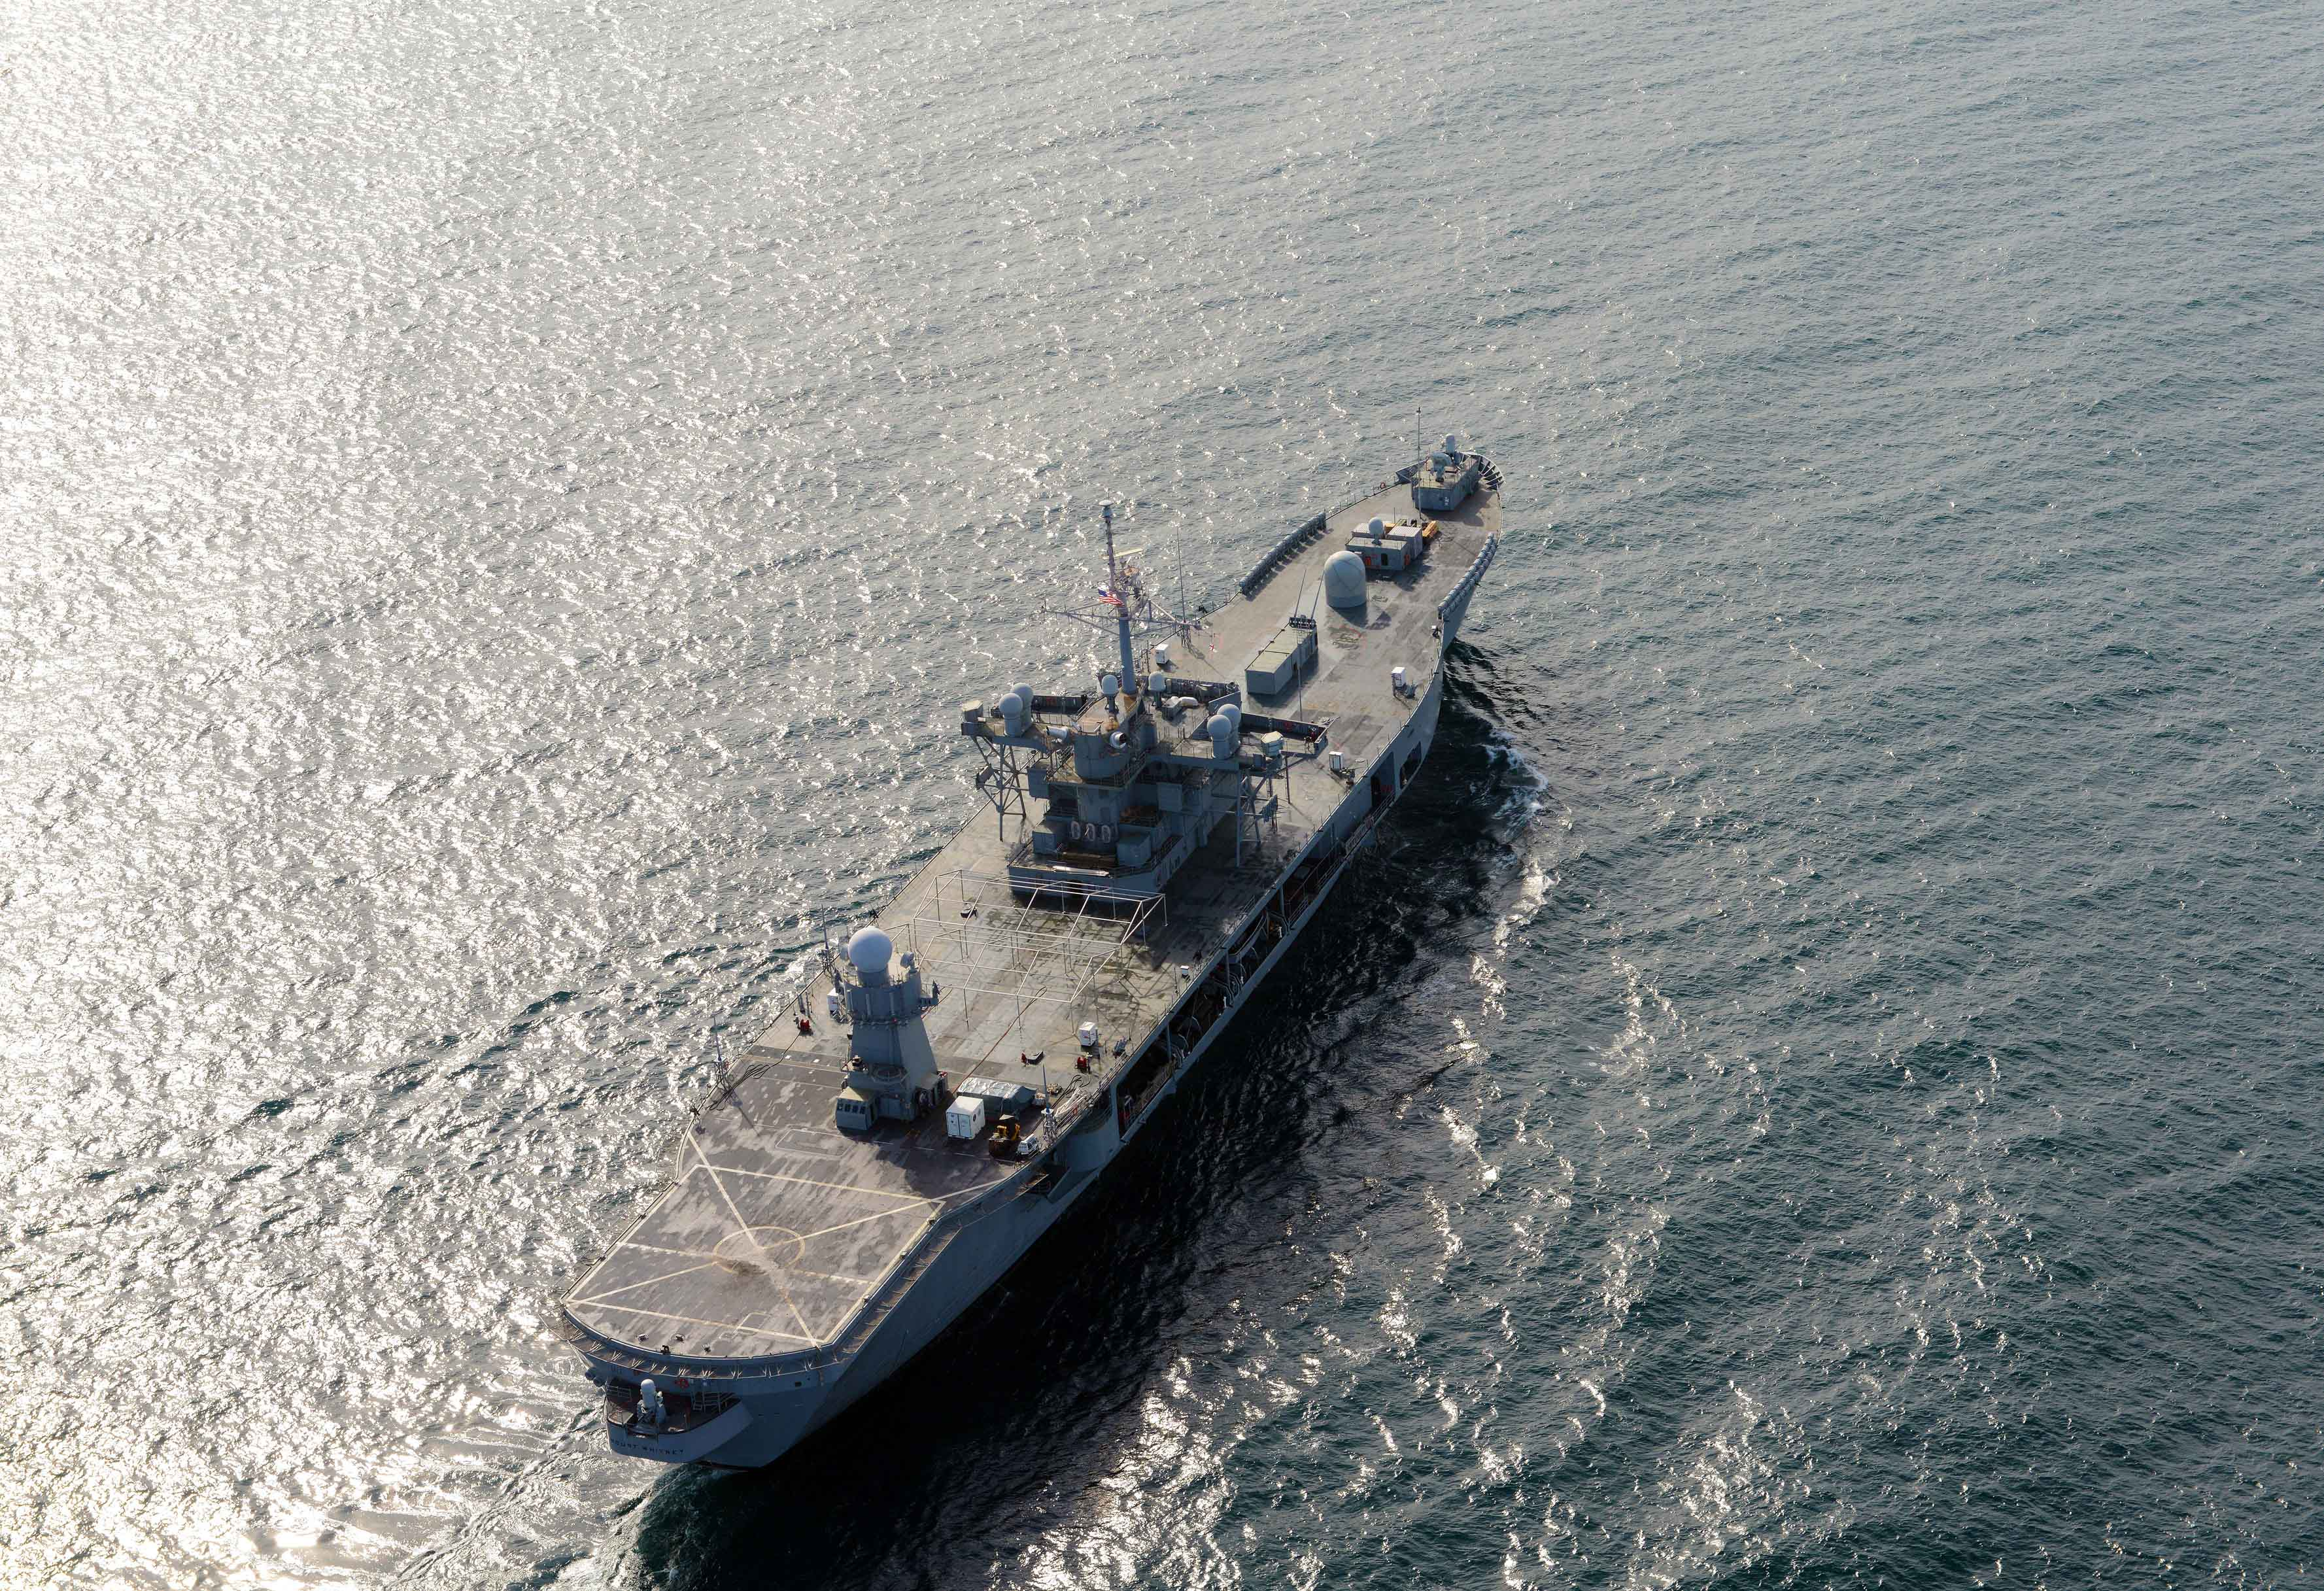 USS Mount Whitney (LCC-20) participates in a passing exercise with vessels from the Georgian coast guard in the Black Sea on Oct. 18, 2014. US Navy Photo